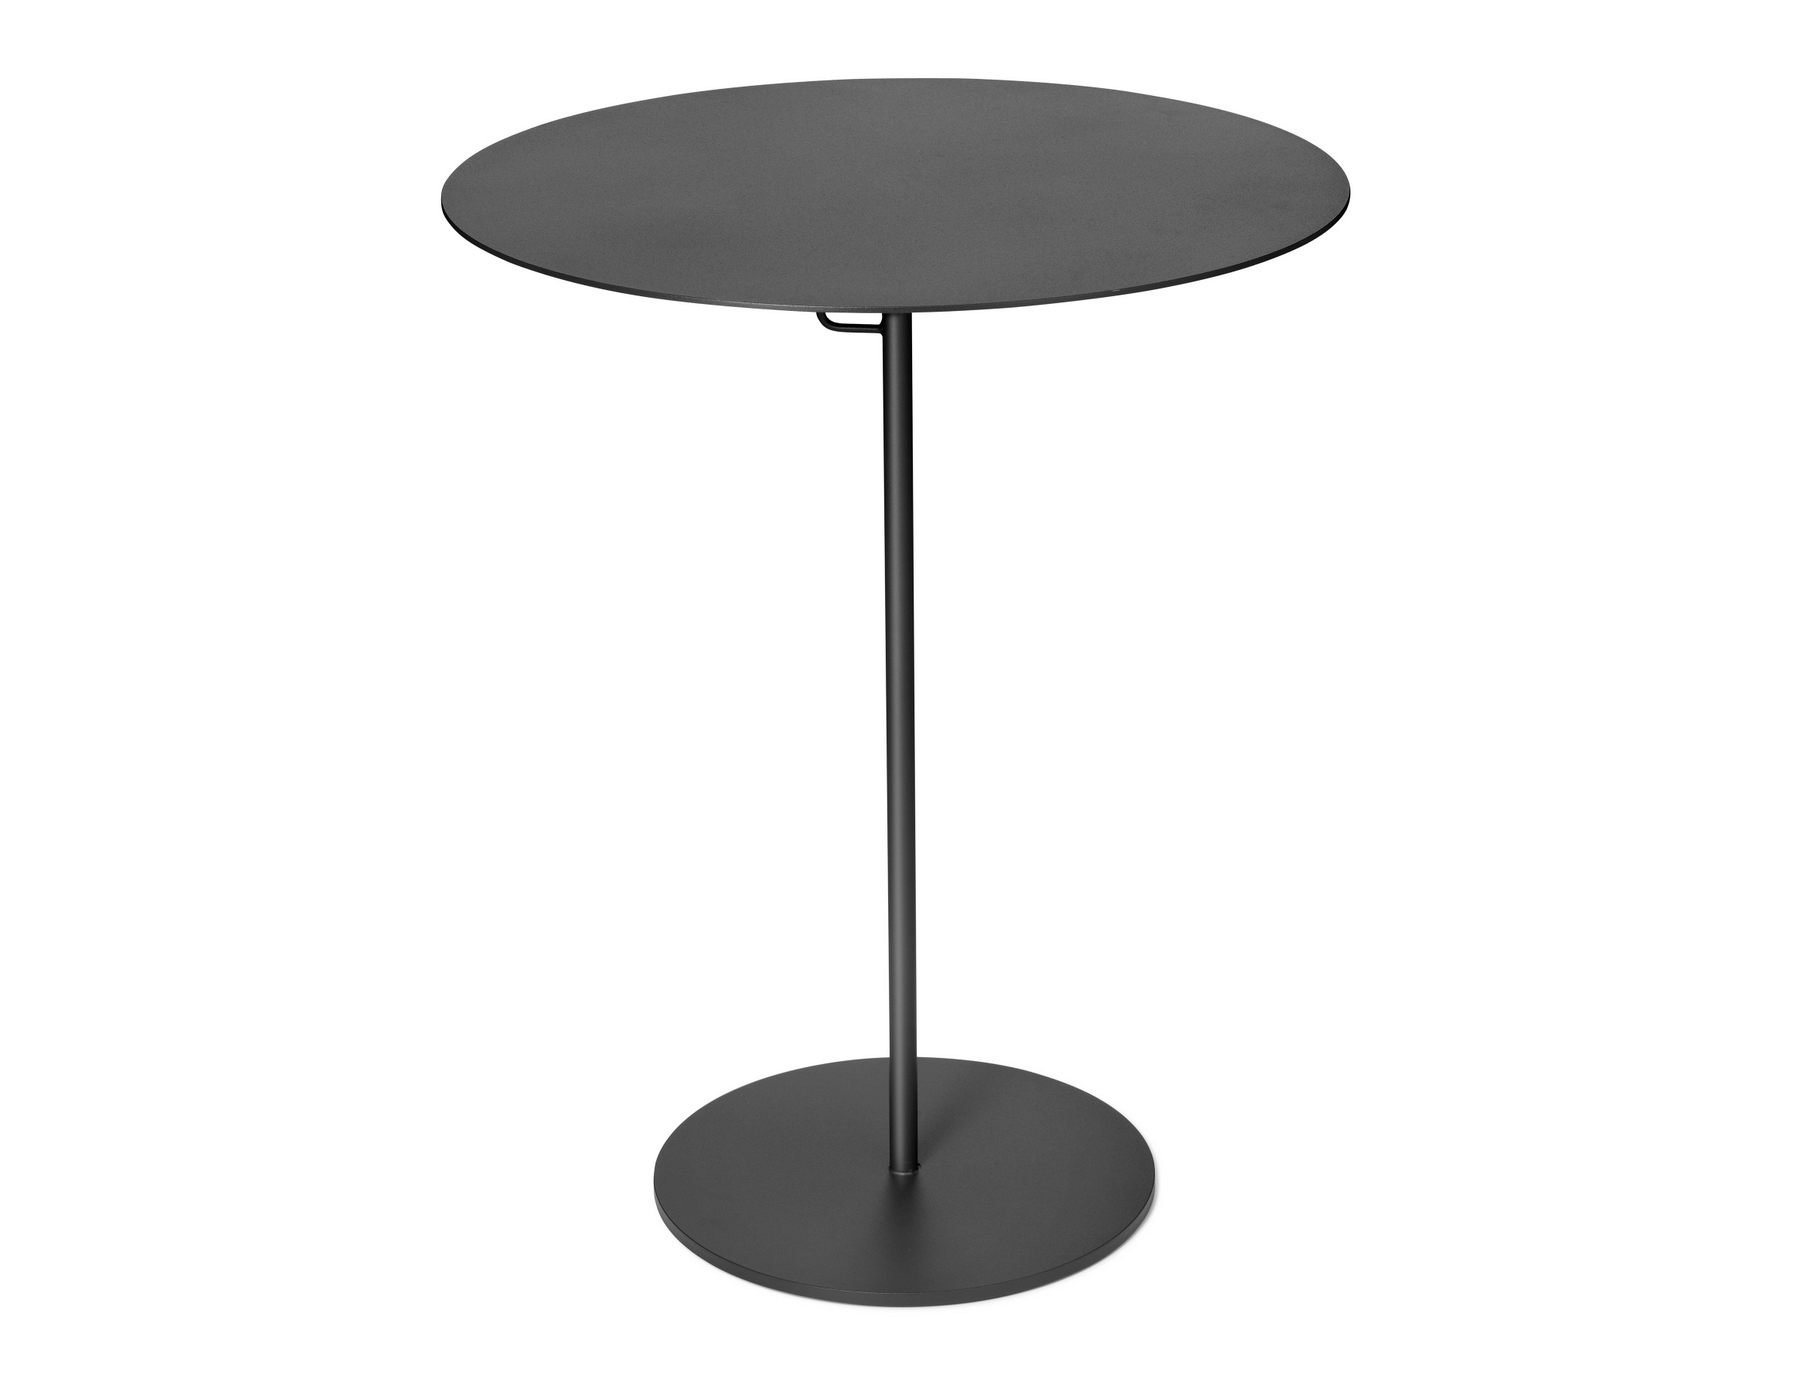 table haute rond en acier kyparn table d 39 appoint de. Black Bedroom Furniture Sets. Home Design Ideas